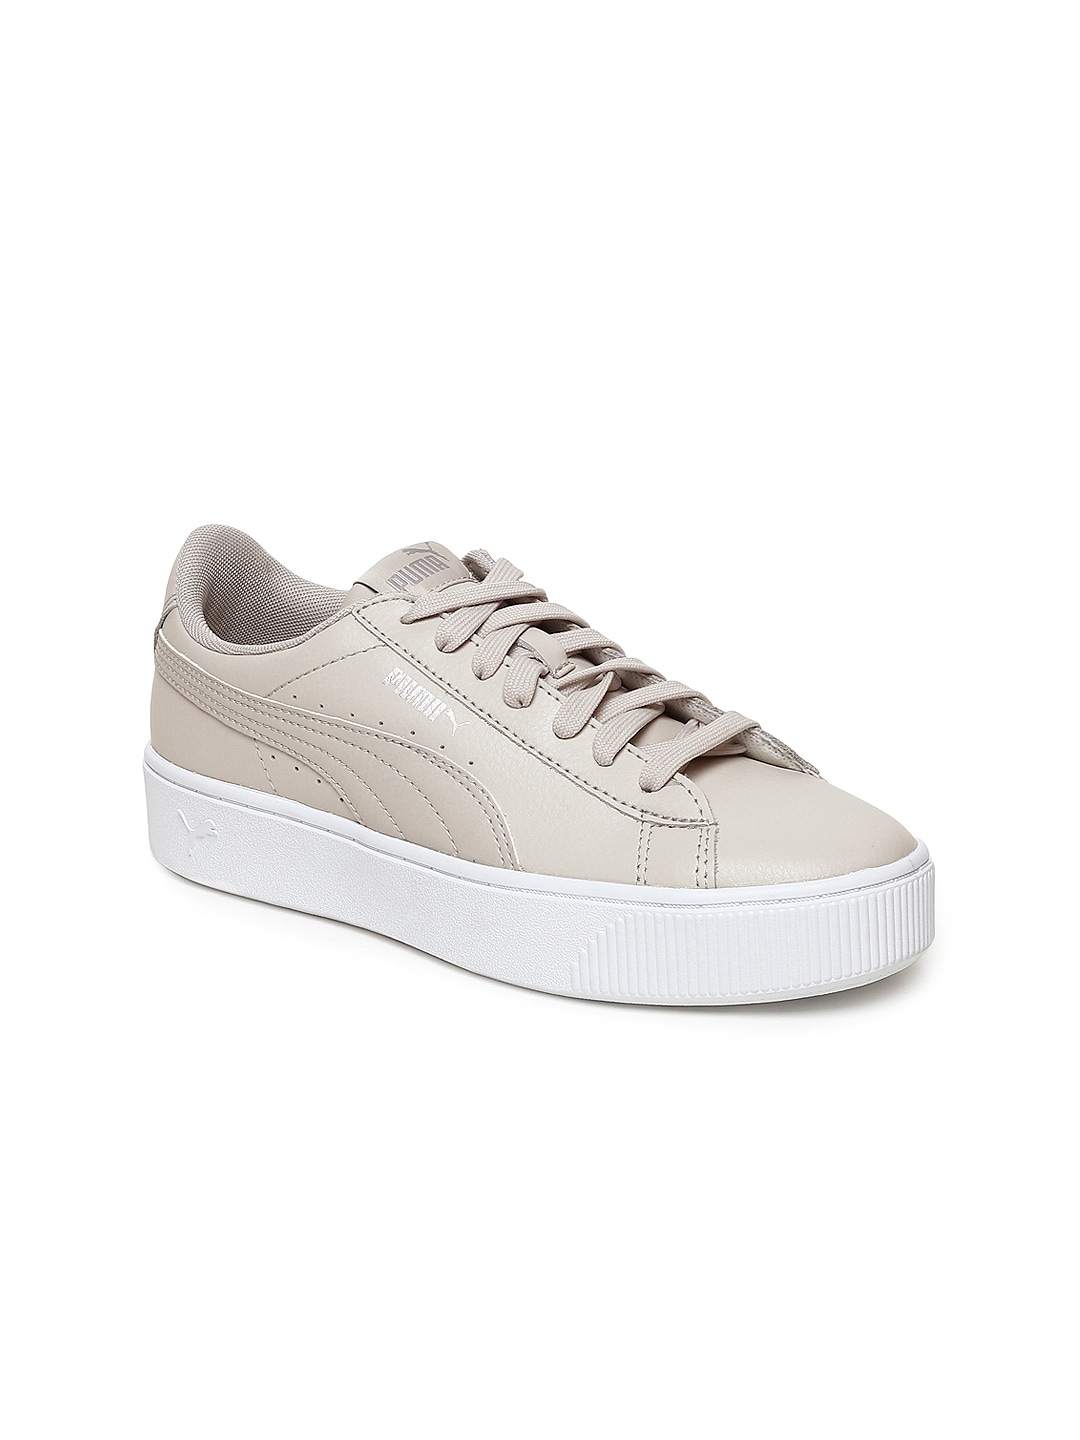 2f8e8783253d Puma Shoes - Buy Puma Shoes for Men   Women Online in India